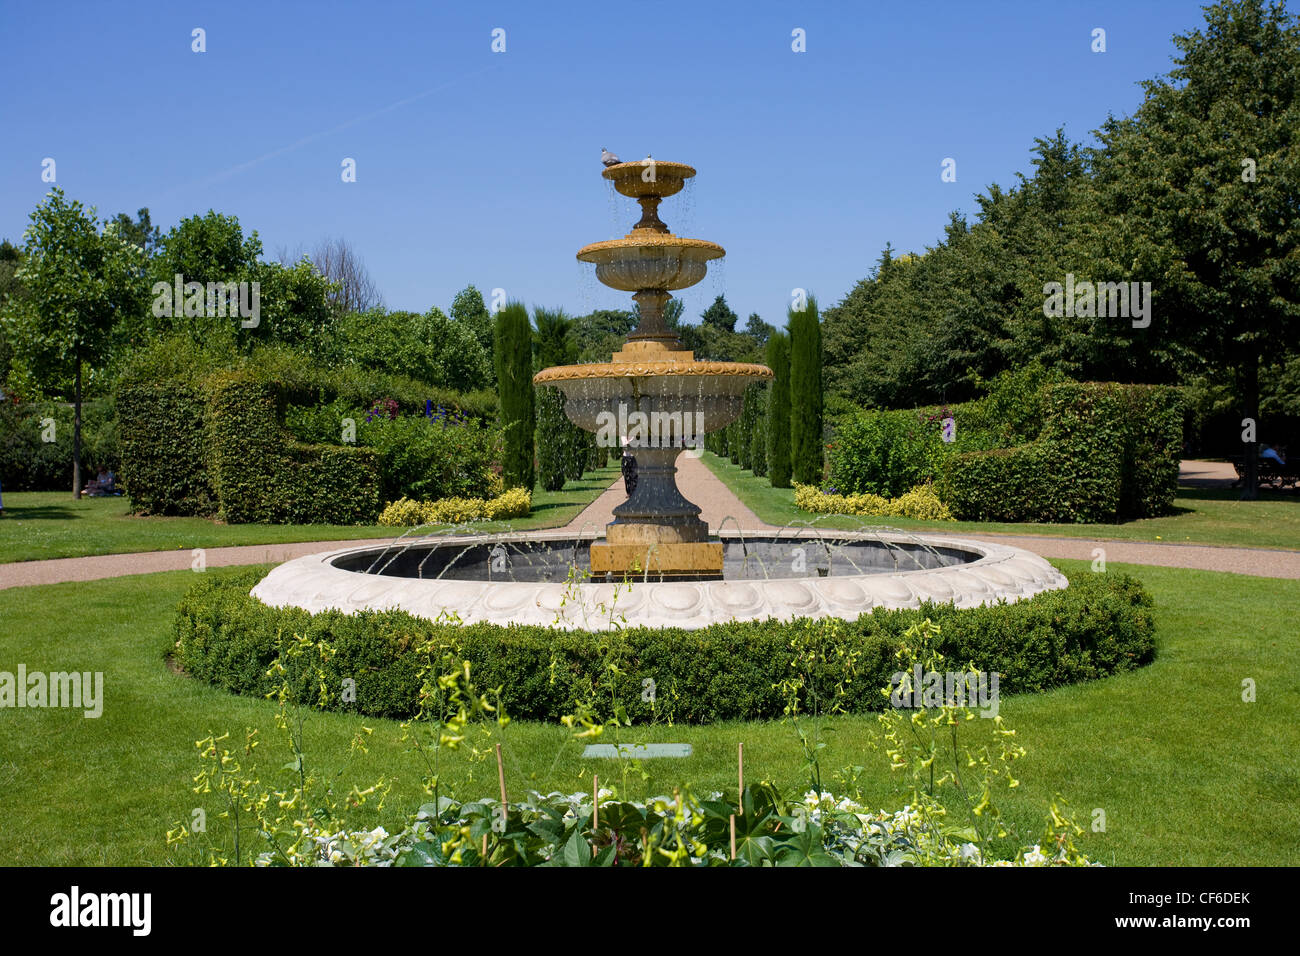 A fountain in The Regent's Park. - Stock Image